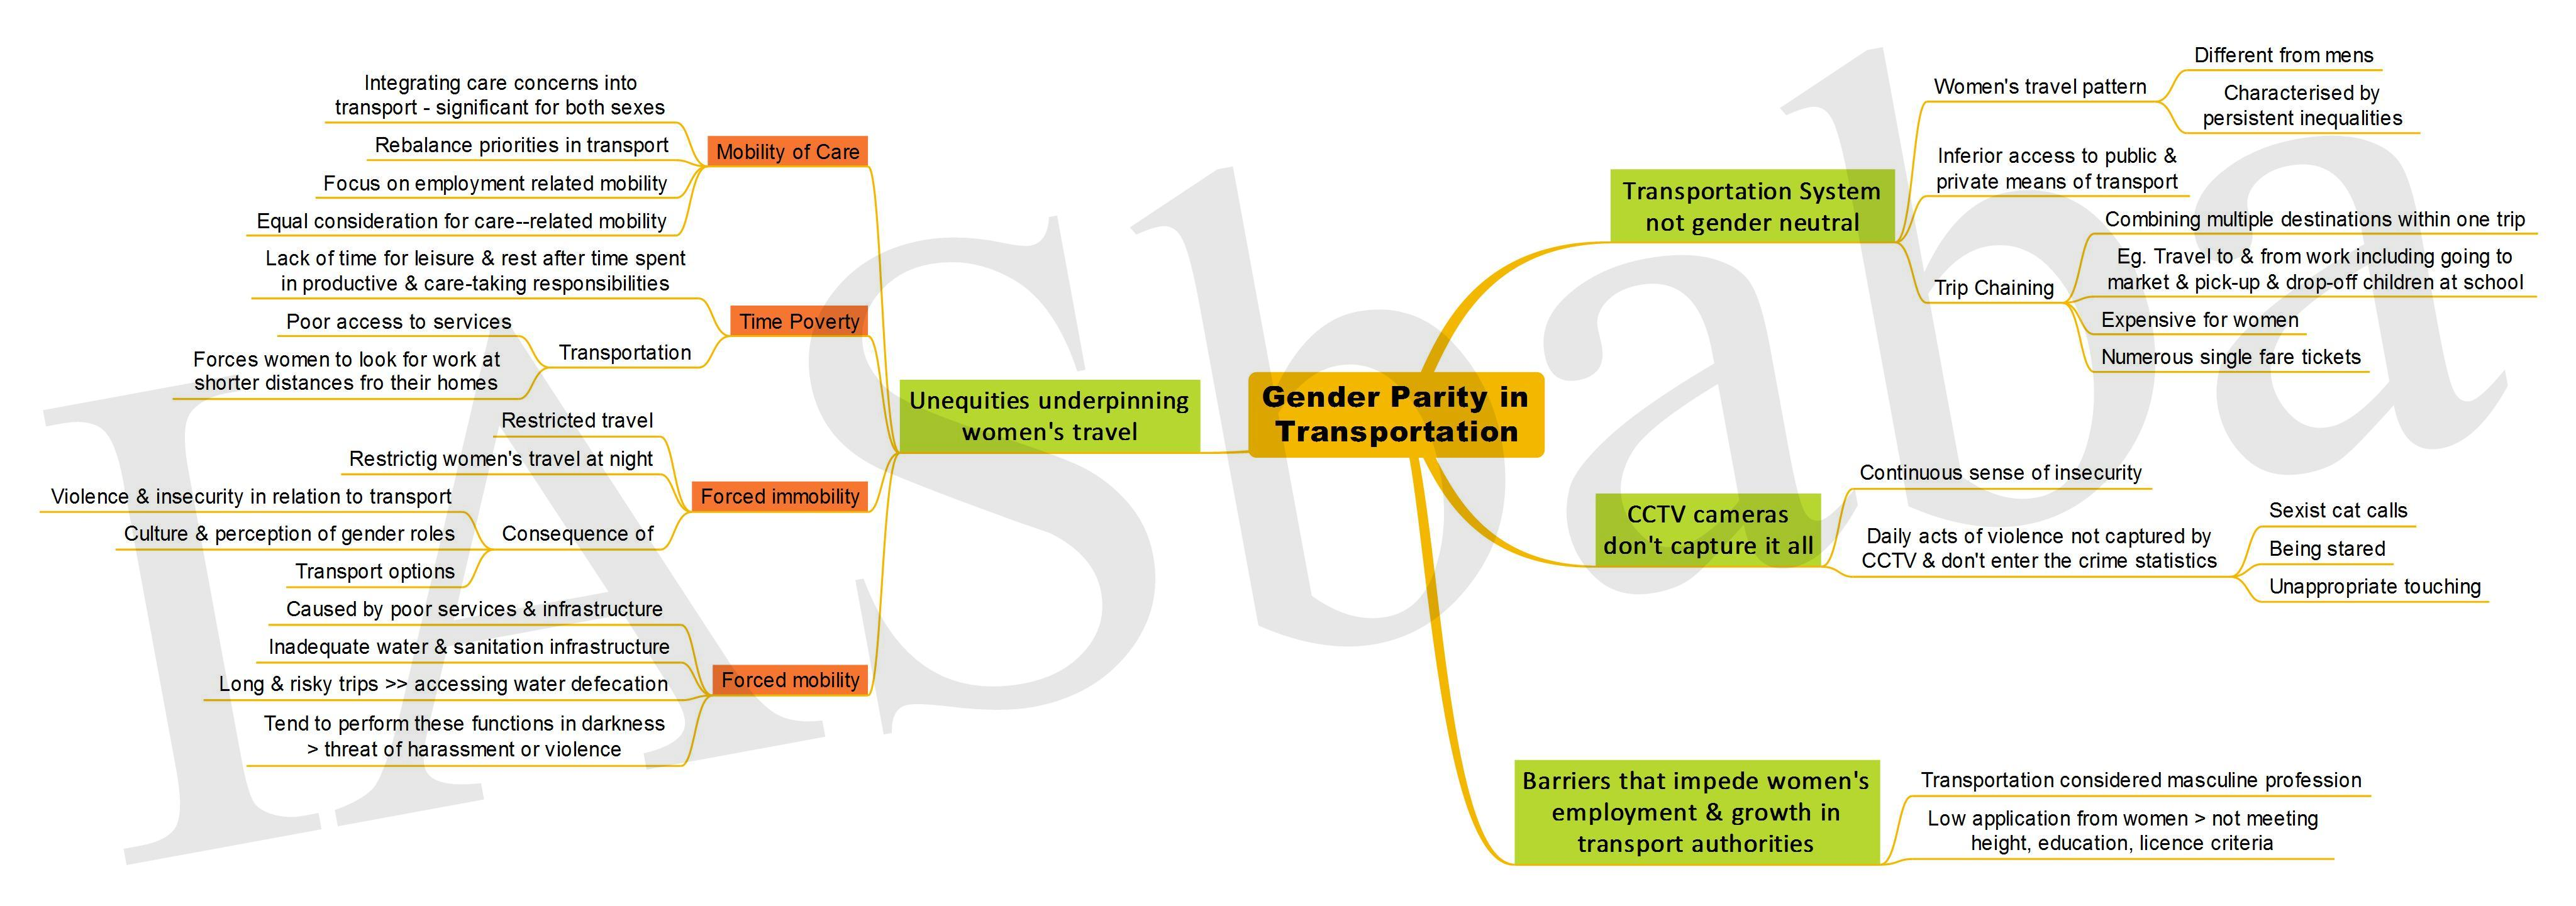 Gender Parity in Transportation-IASbaba